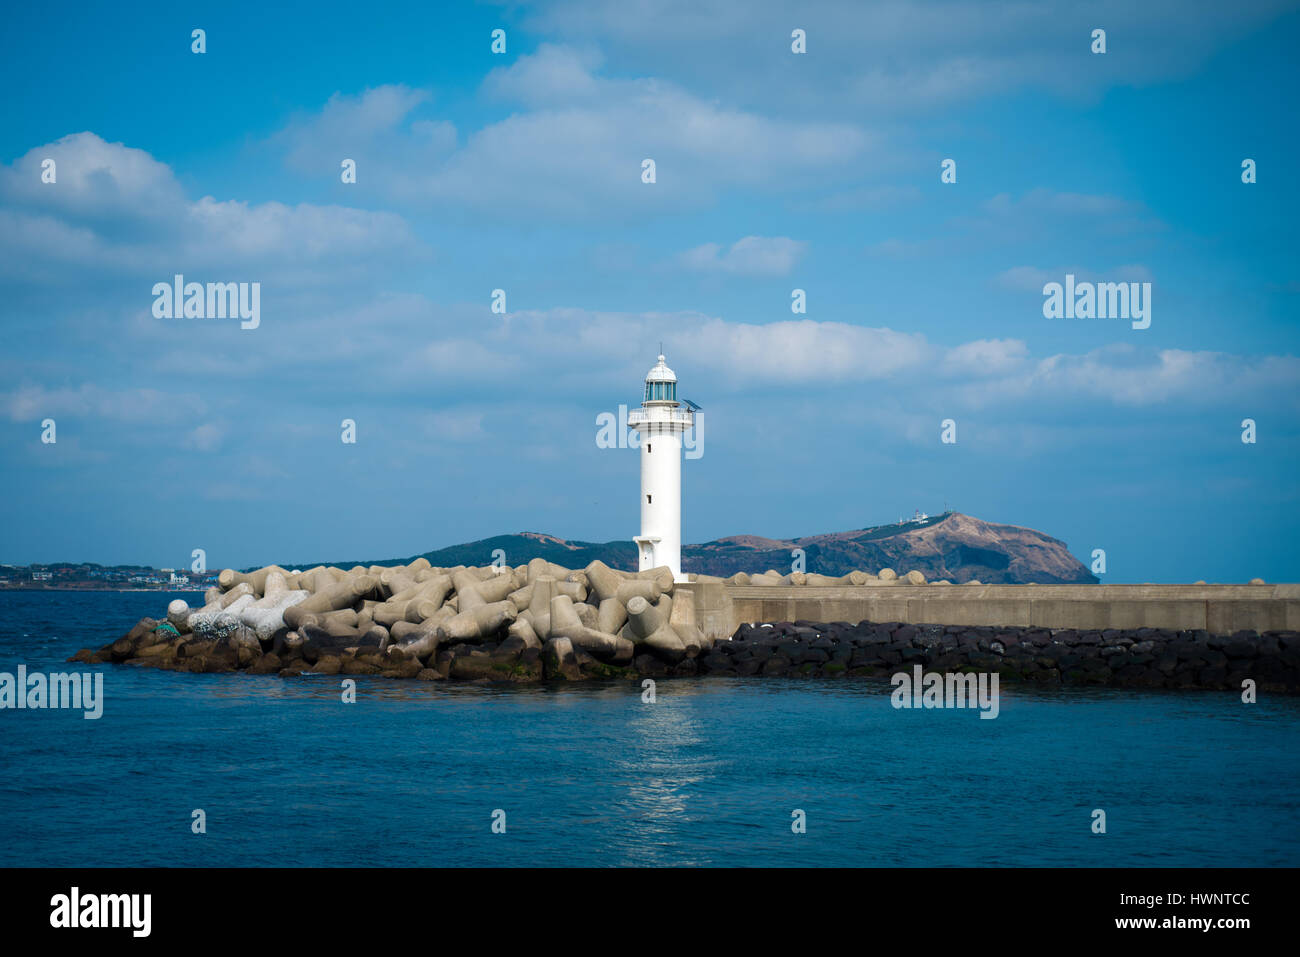 White Lighthouse Against A Blue Sky - Stock Photo